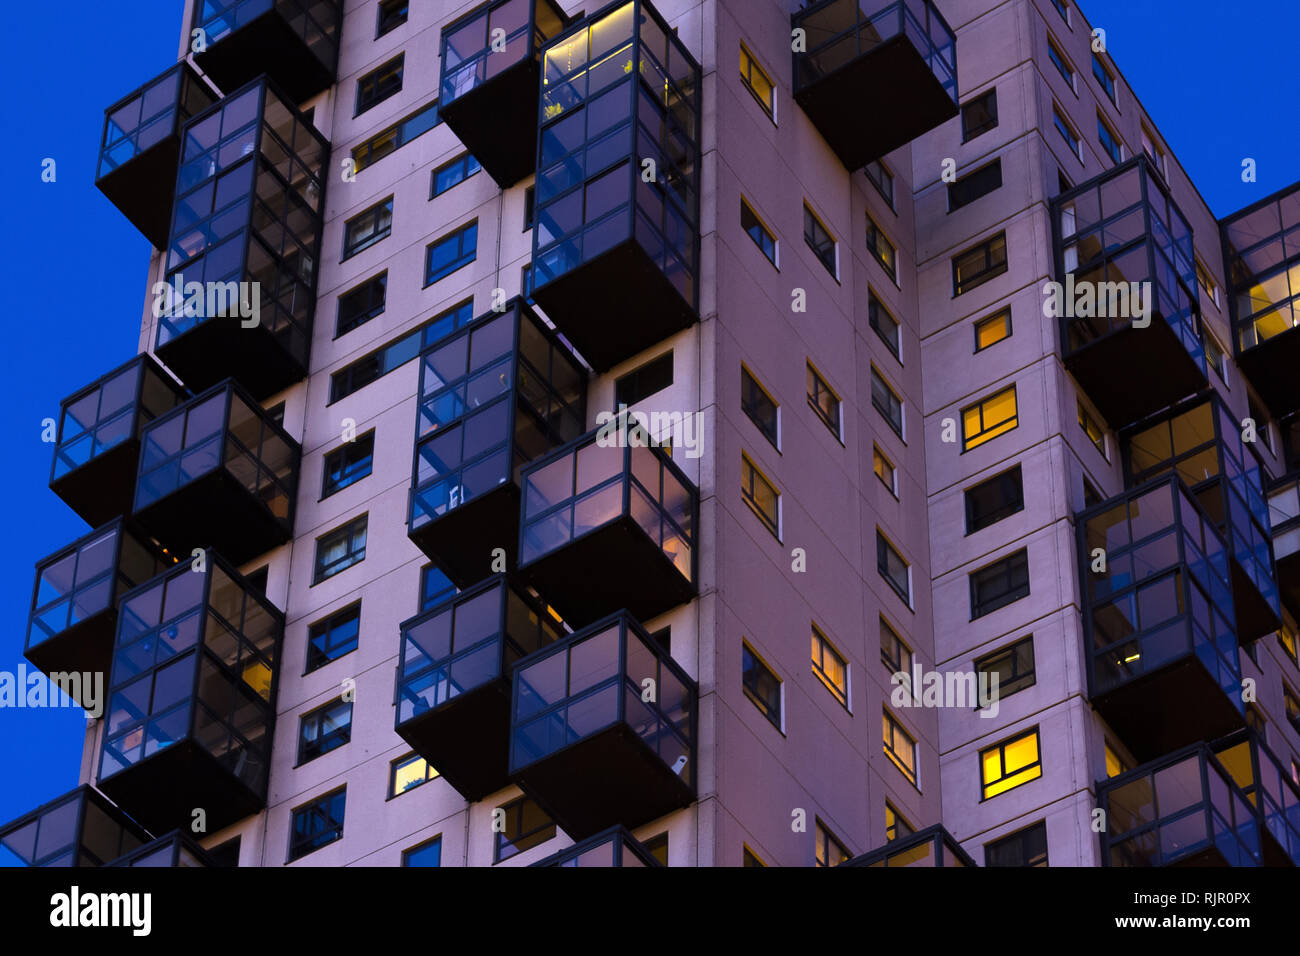 Late night view of council flats. Exterior of complex building in the city Stock Photo